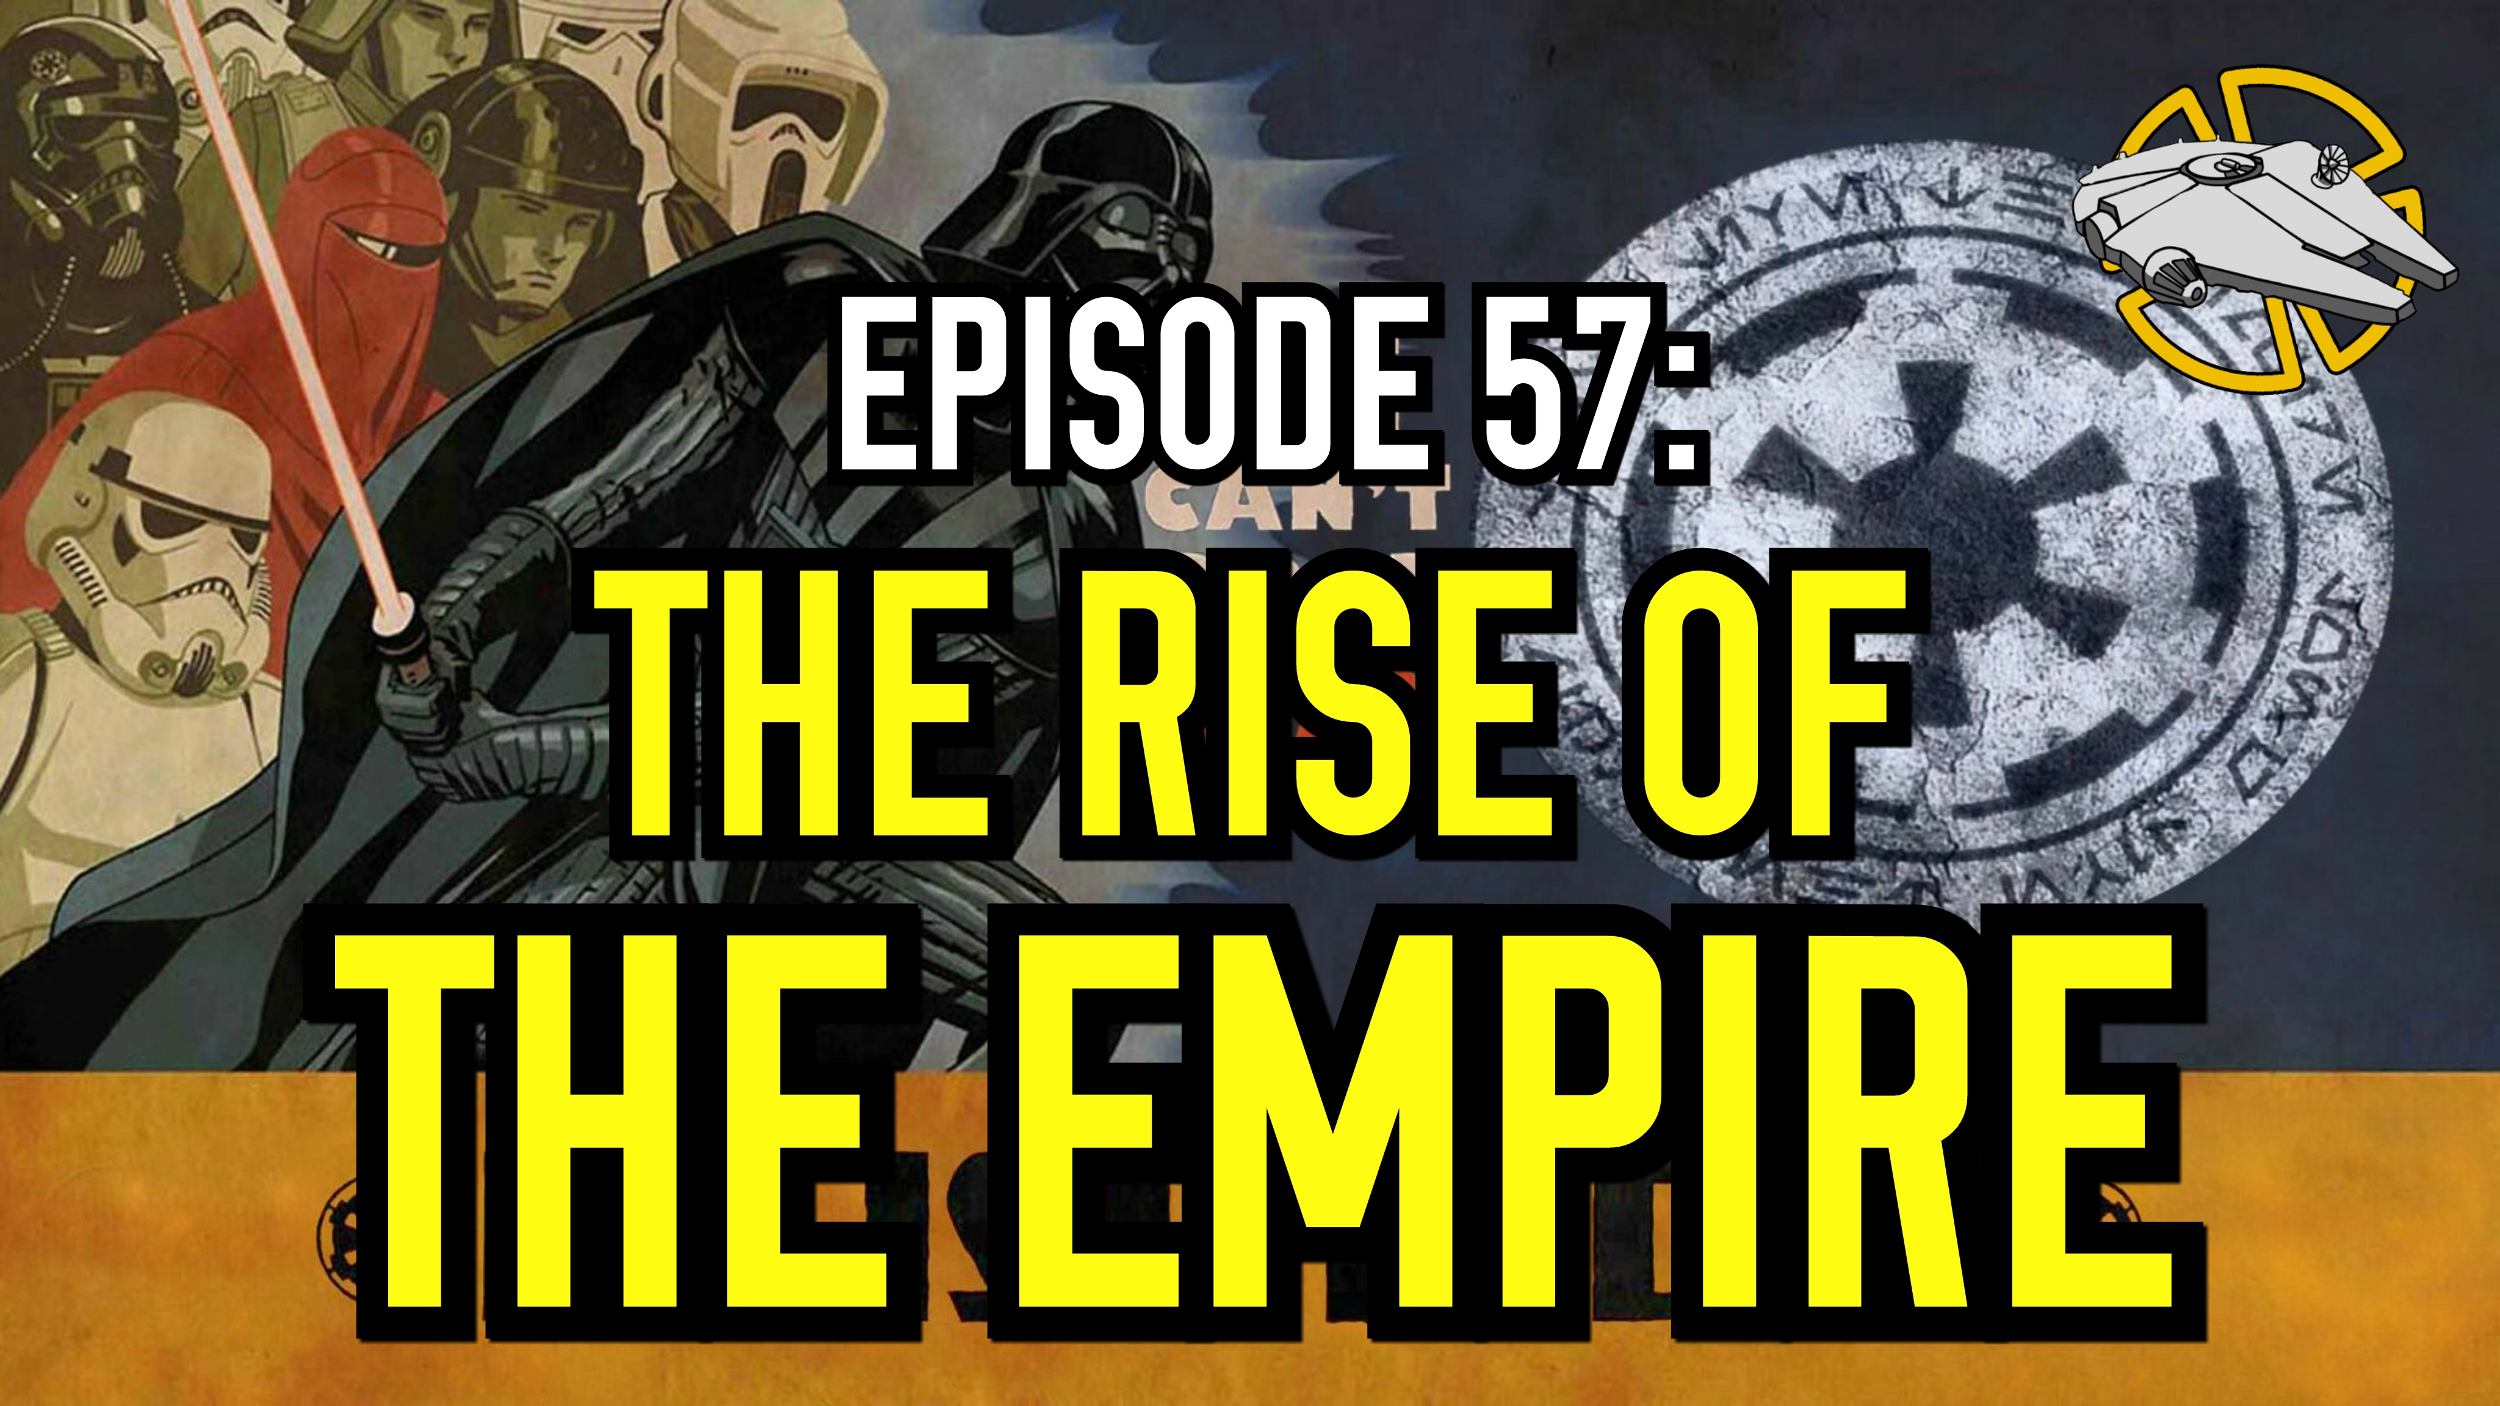 Episode 57: The Rise of the Empire